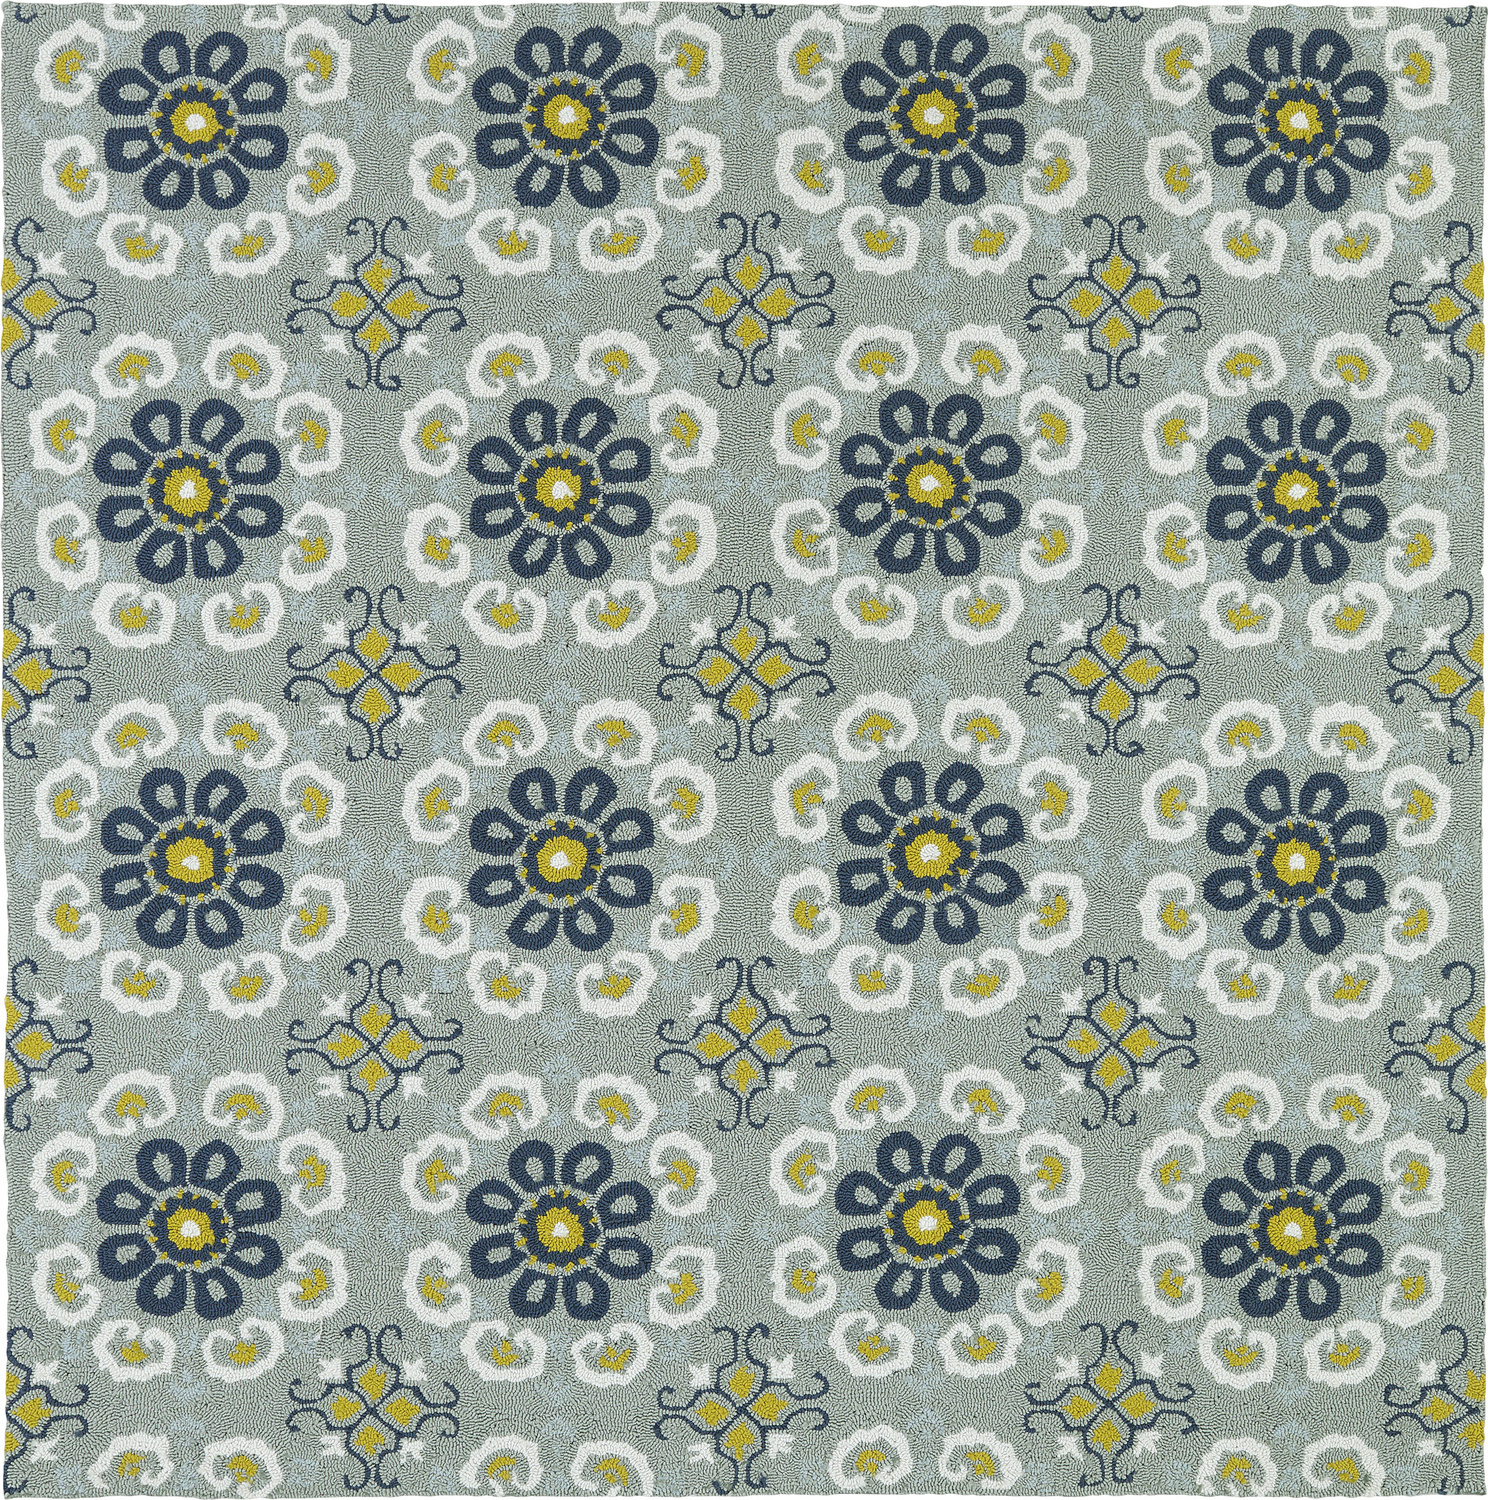 Square Habitat 35 Kaleen Habitat Pewter Green Outdoor Patterned Modern Rug 2 From